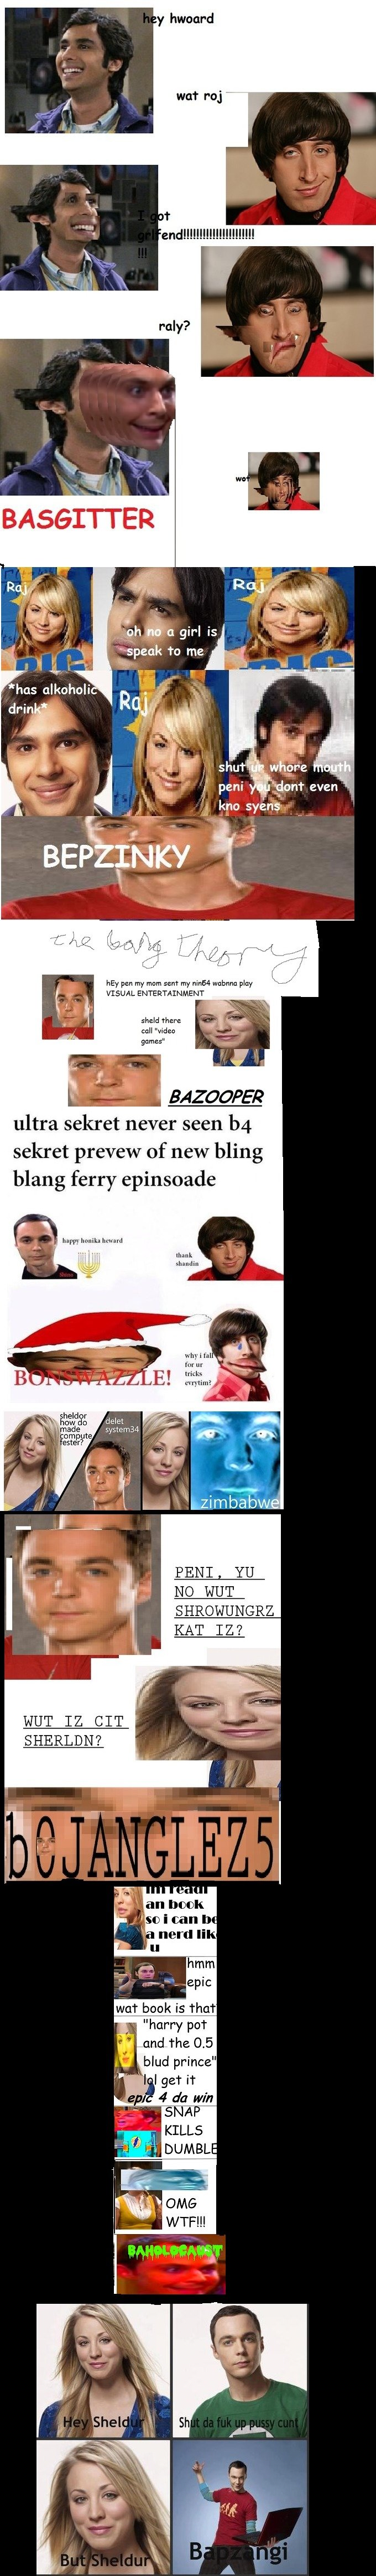 """The Big Bang Therory- By 4chan. Saw on 4chan Liked Made a comp. C ghwu girl is ispork to me 1' i"""" i F pun lione even . A he sperts my pen my mom sin! my play VI"""